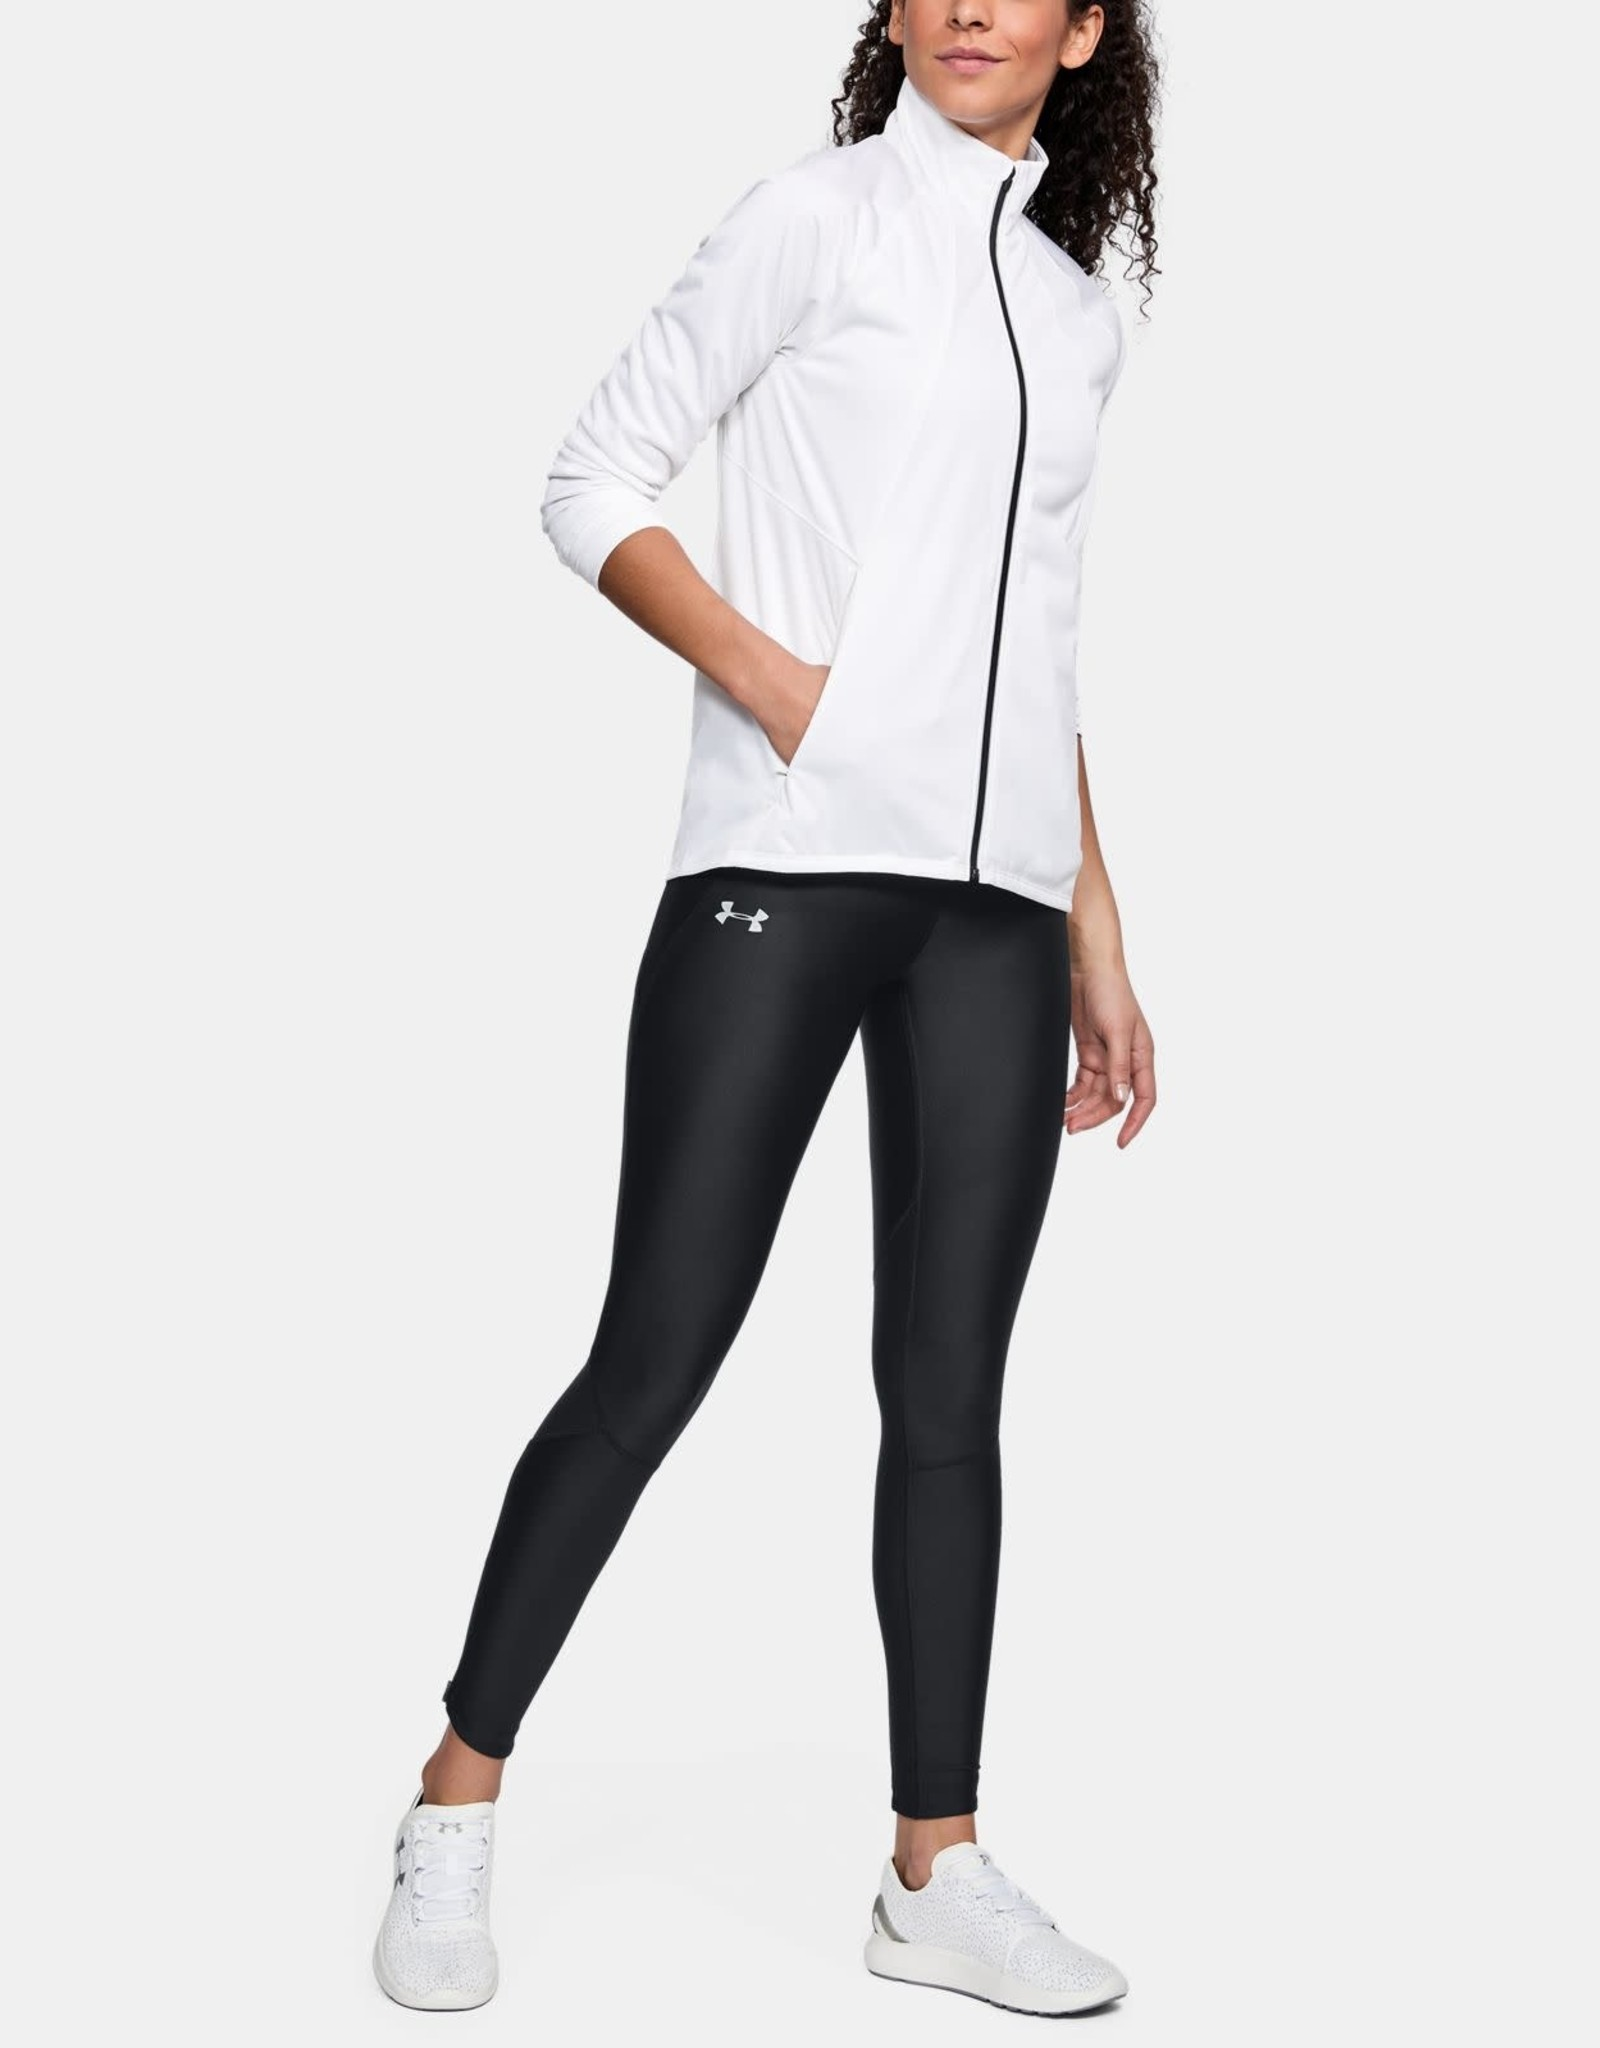 Under Armour Fly fast tight - black